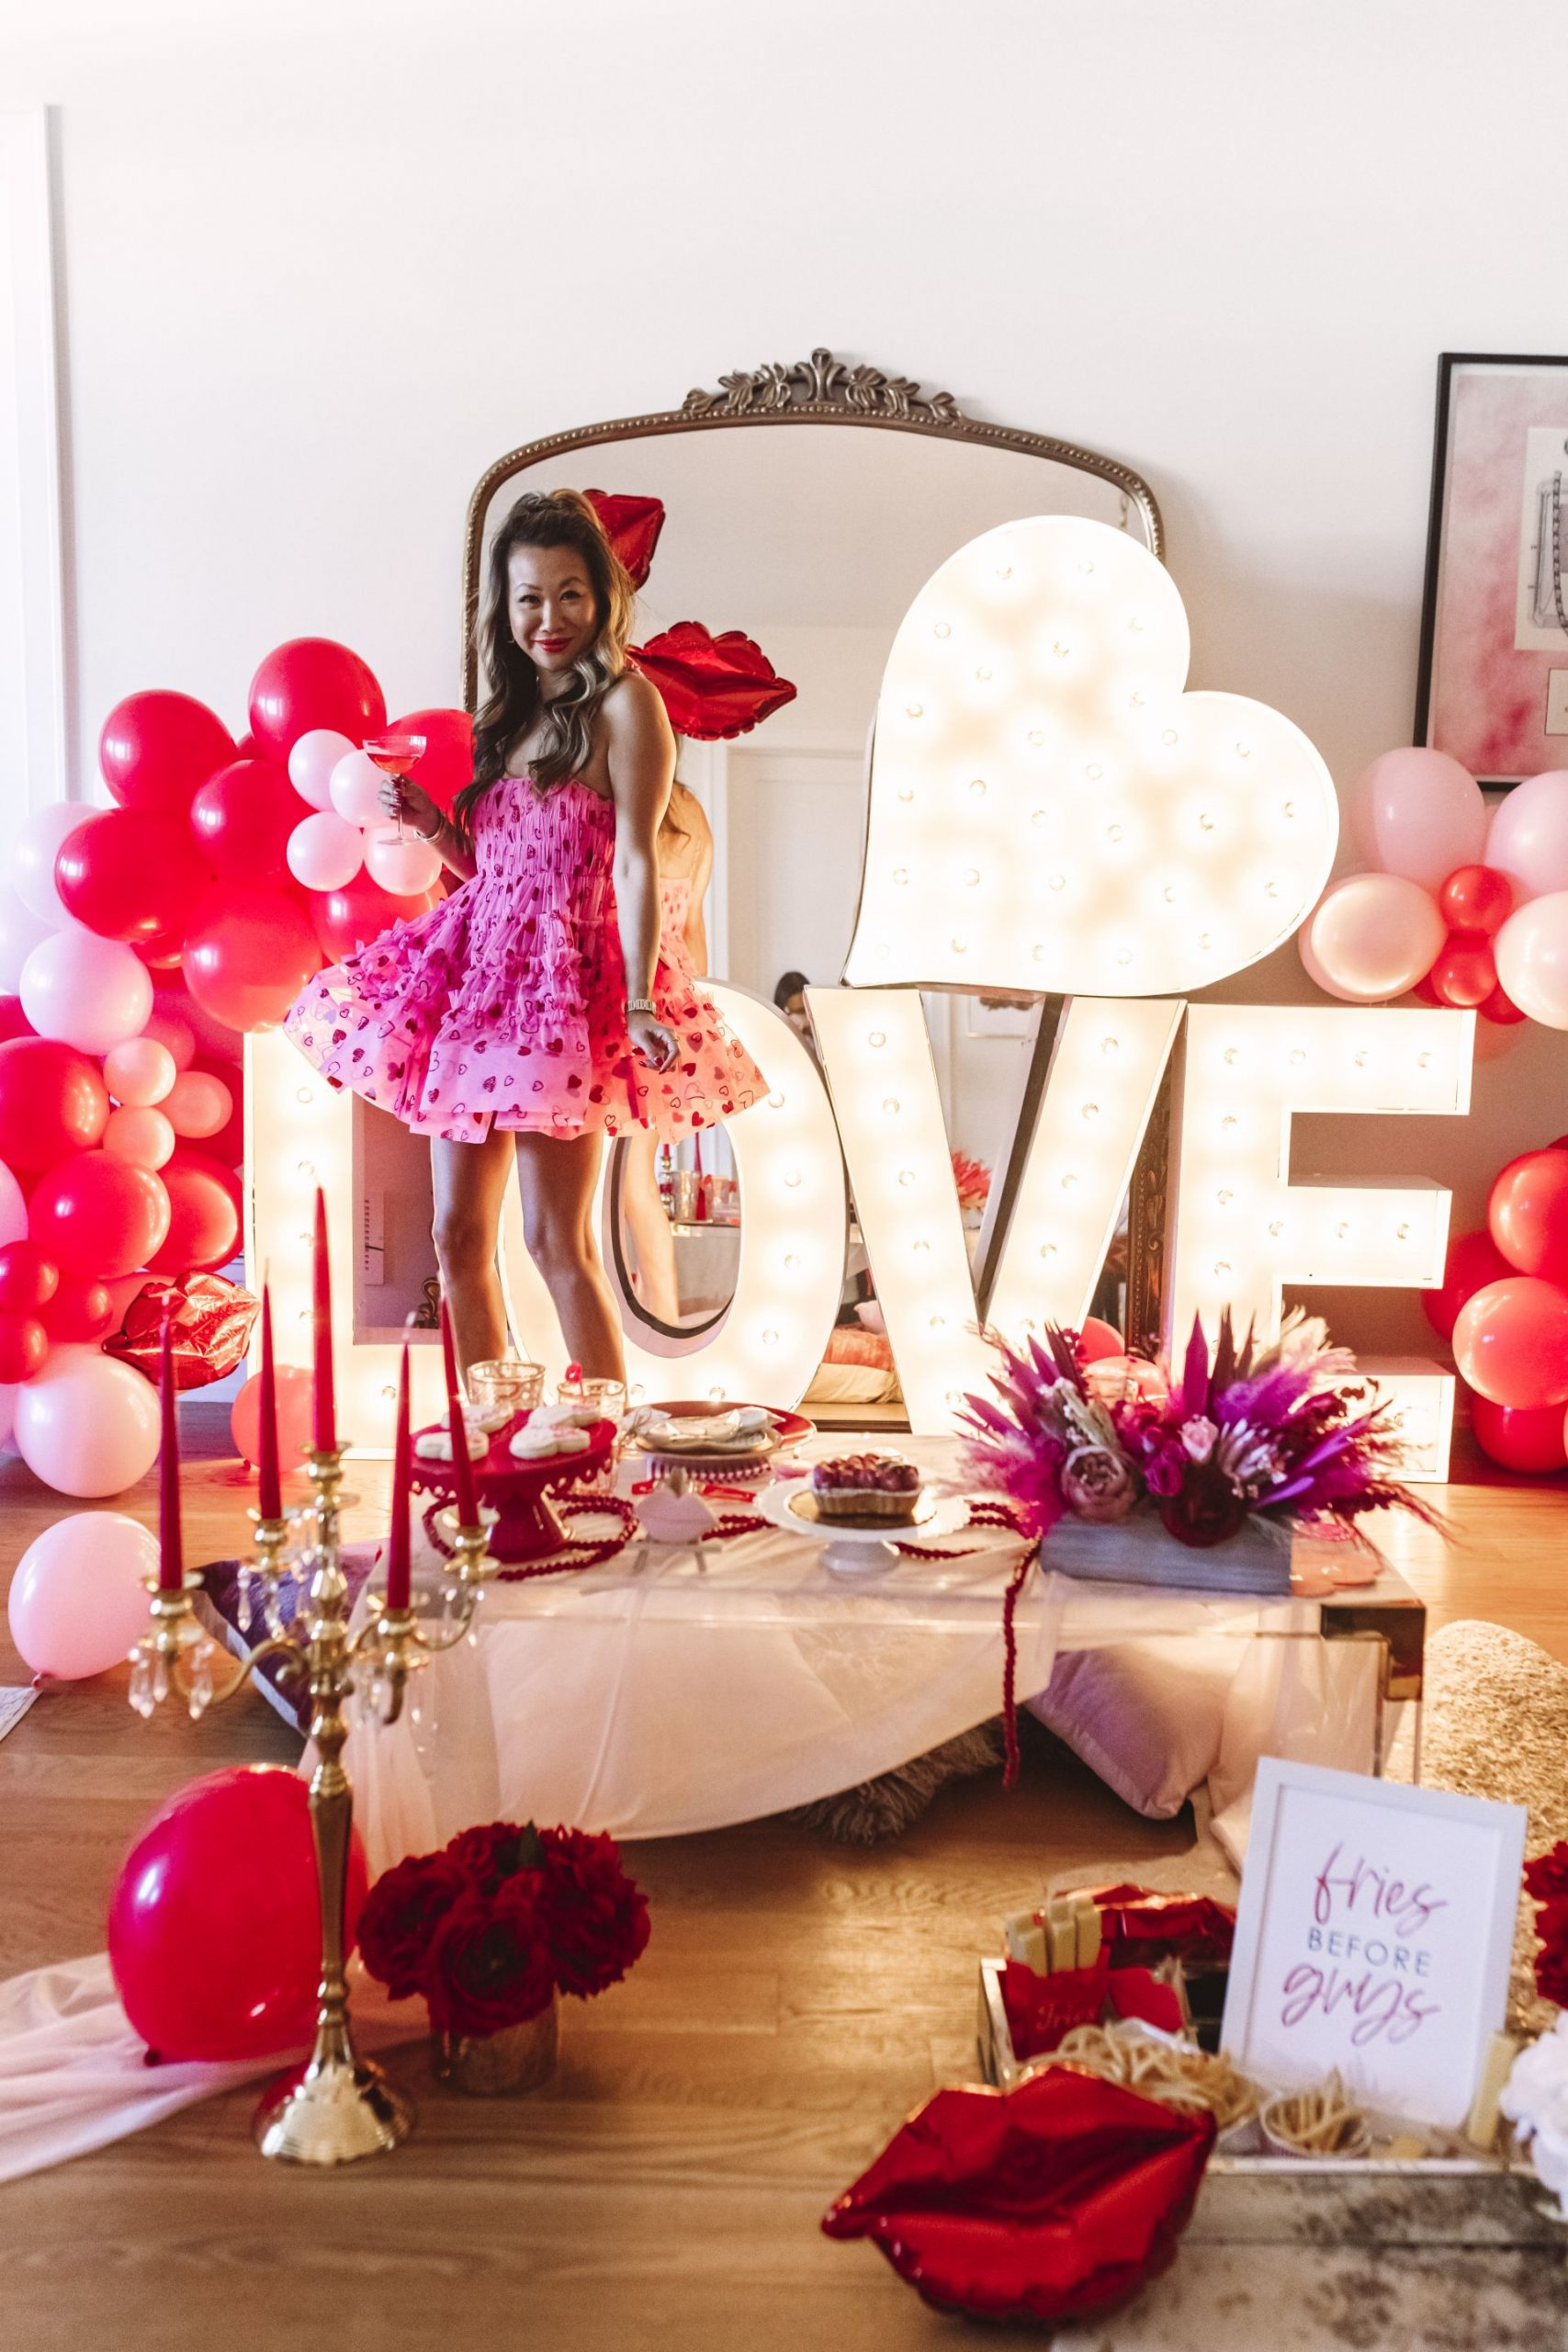 glam Valentine's and Galentine's party, Glam Party Decor Ideas, Galentine's party decor, Valentine's day party decor, girls night party decor ideas, Vday party decorations, pink and red party theme, girly party theme decor, love party theme decor, valentines day party ideas, valentines day party ideas for adults,  light up marquee letters for parties, Red Soles and Red Wine, Jennifer Worman